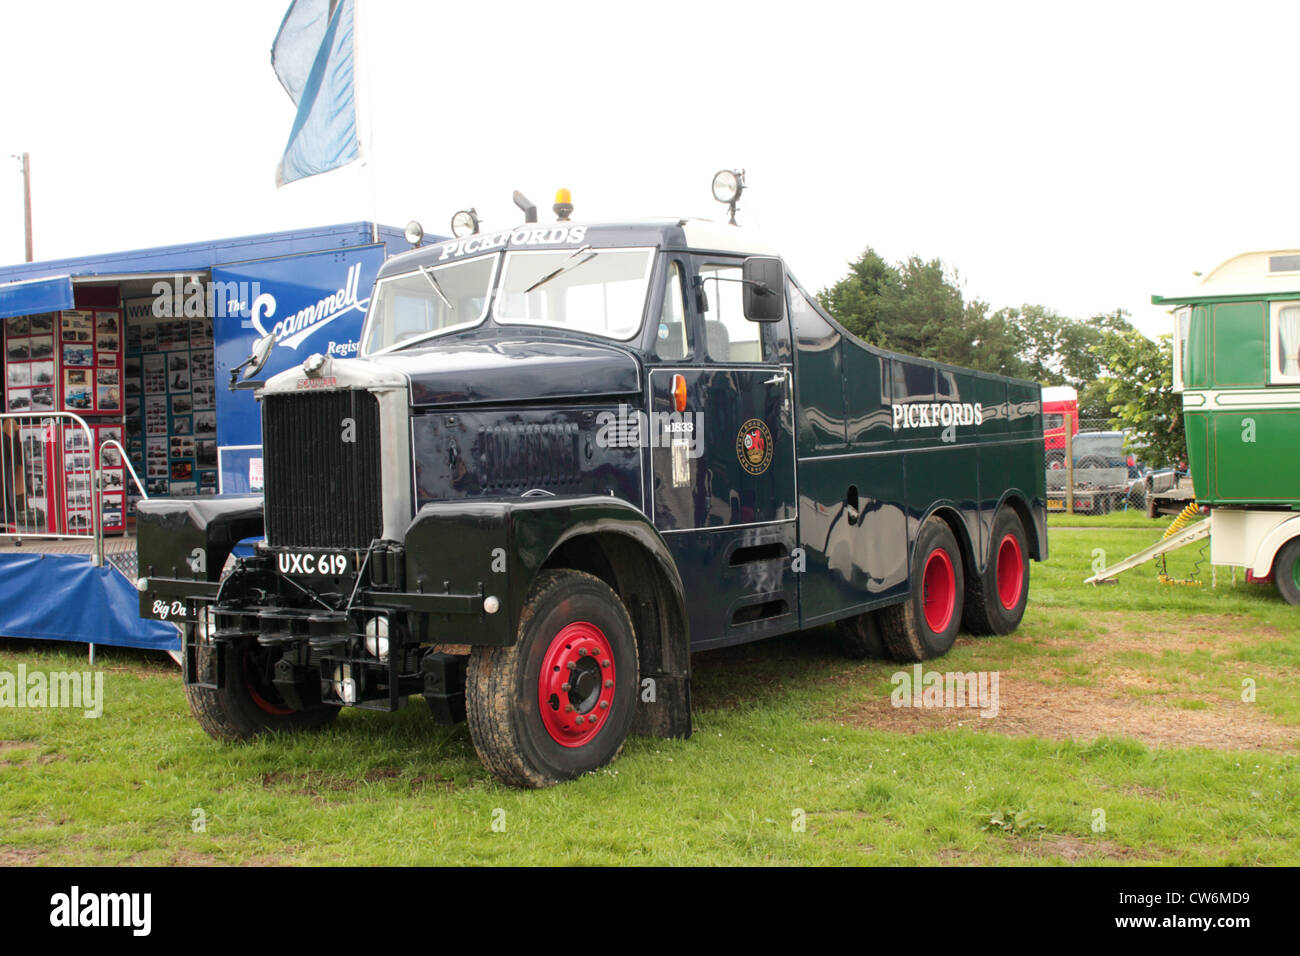 A Pickfords Scammell Junior Constructor UXC 619 on display at a Classic Vehicle Show West Sussex UK - Stock Image